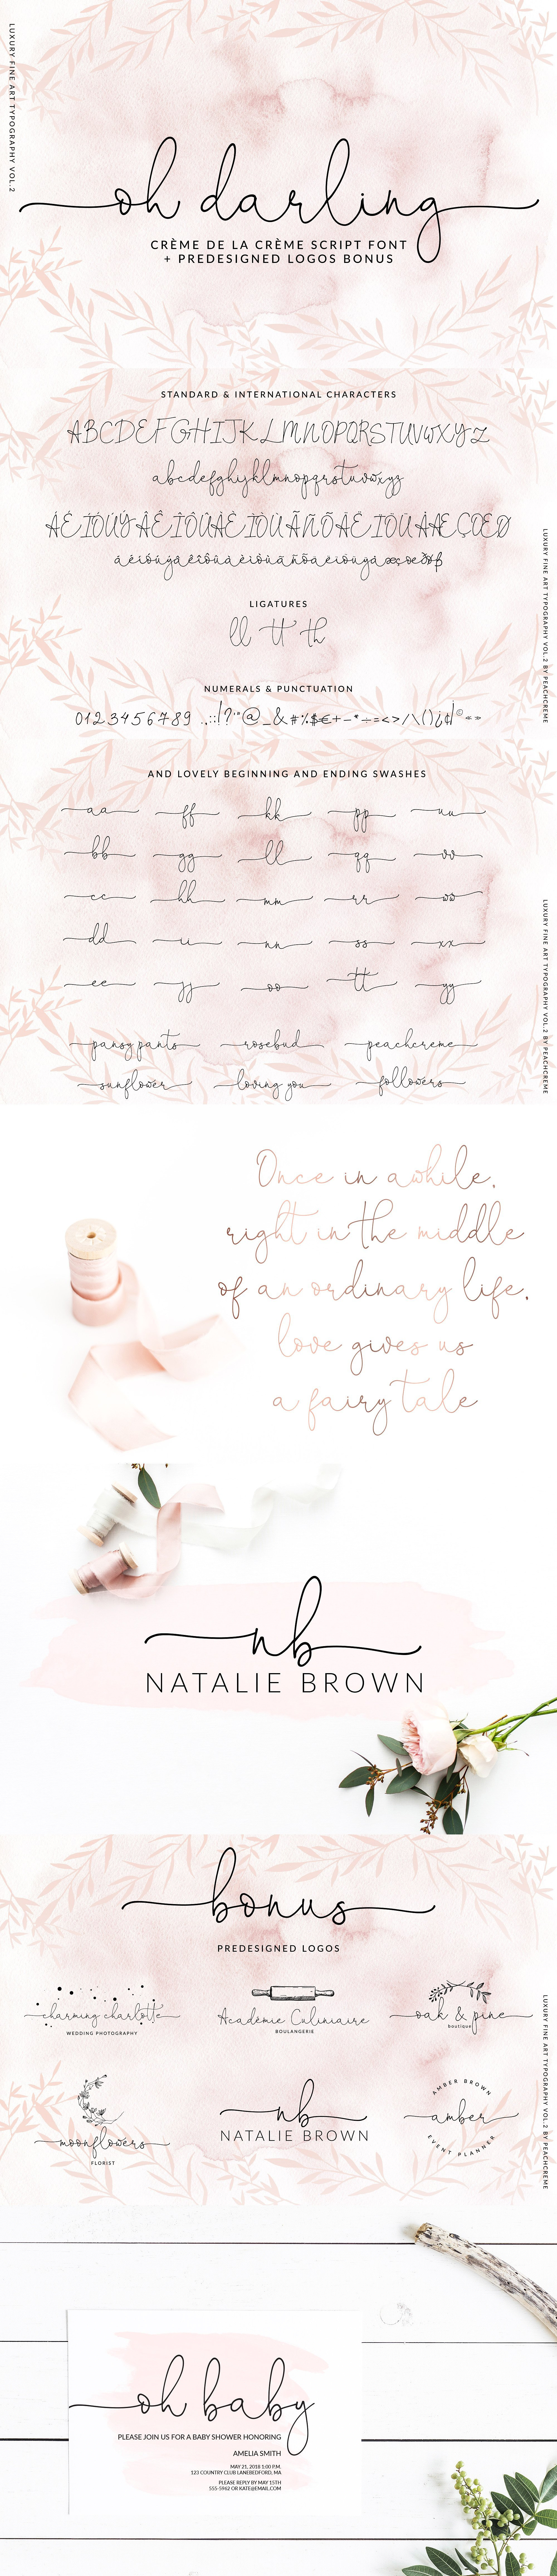 Letter Of Rogatory Template - Letters Rogatory Inspirational Oh Darling Ethereal Script Font